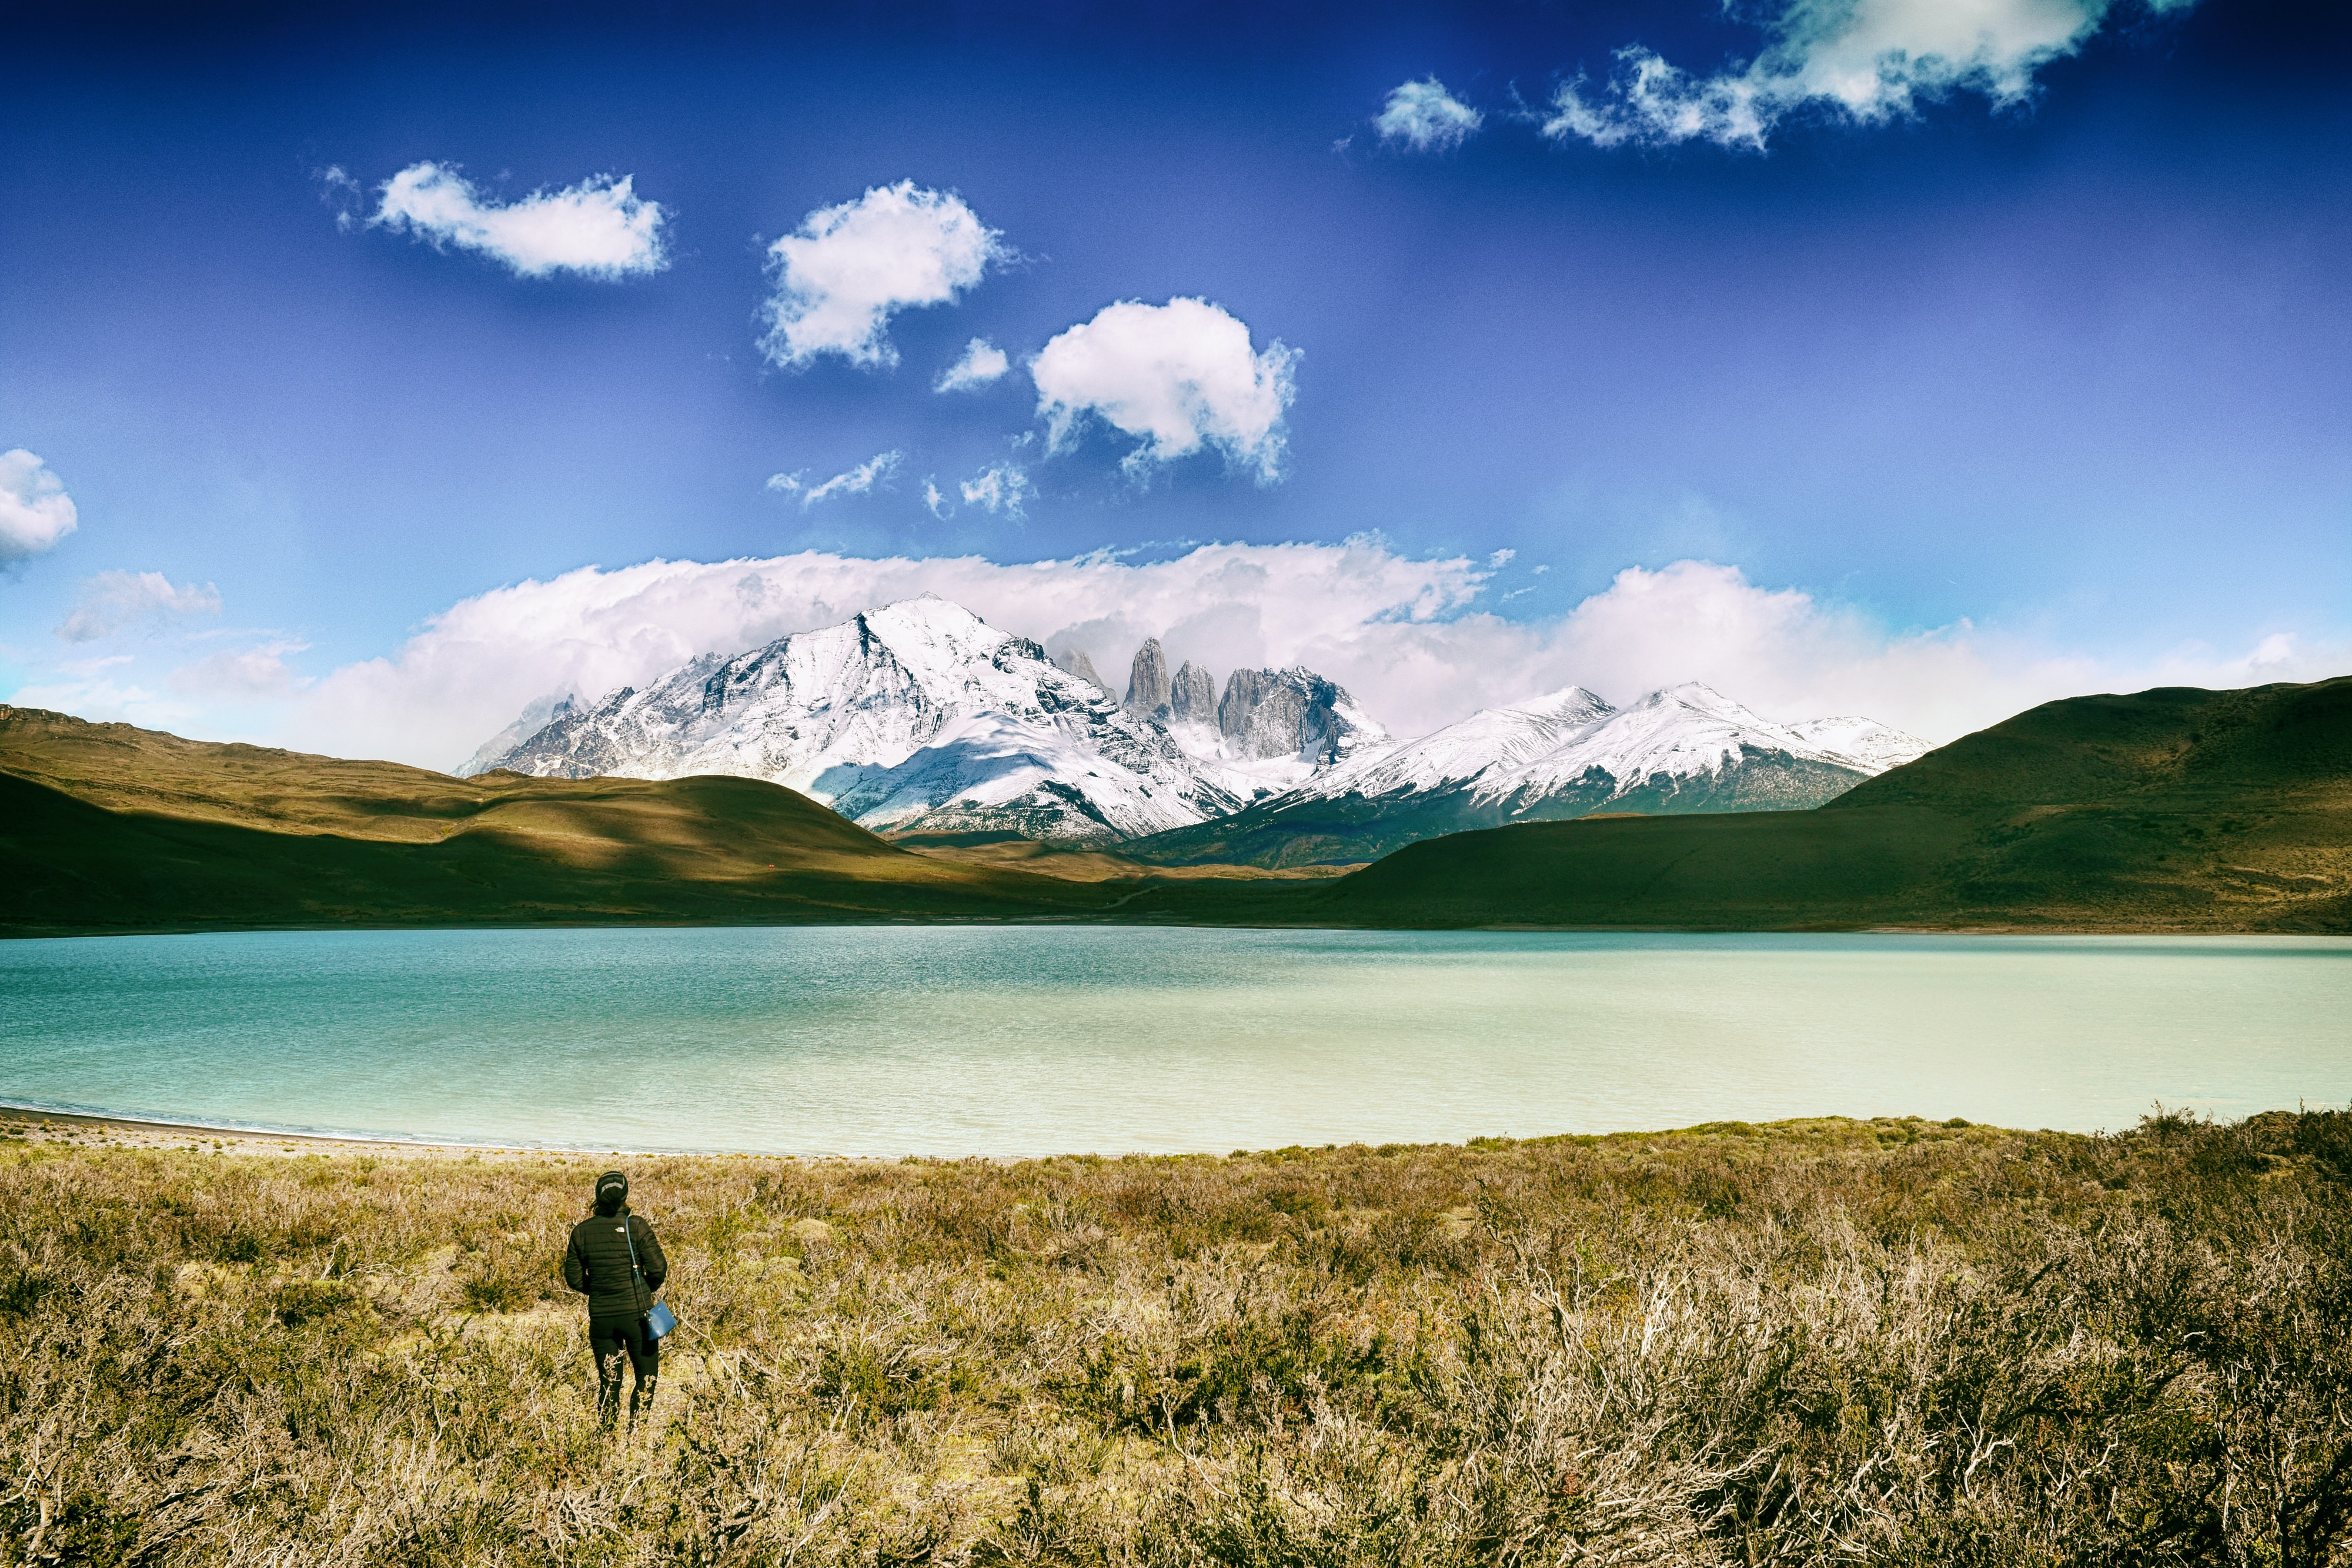 person standing on green grass with green calm body of water near mountains view at daytime